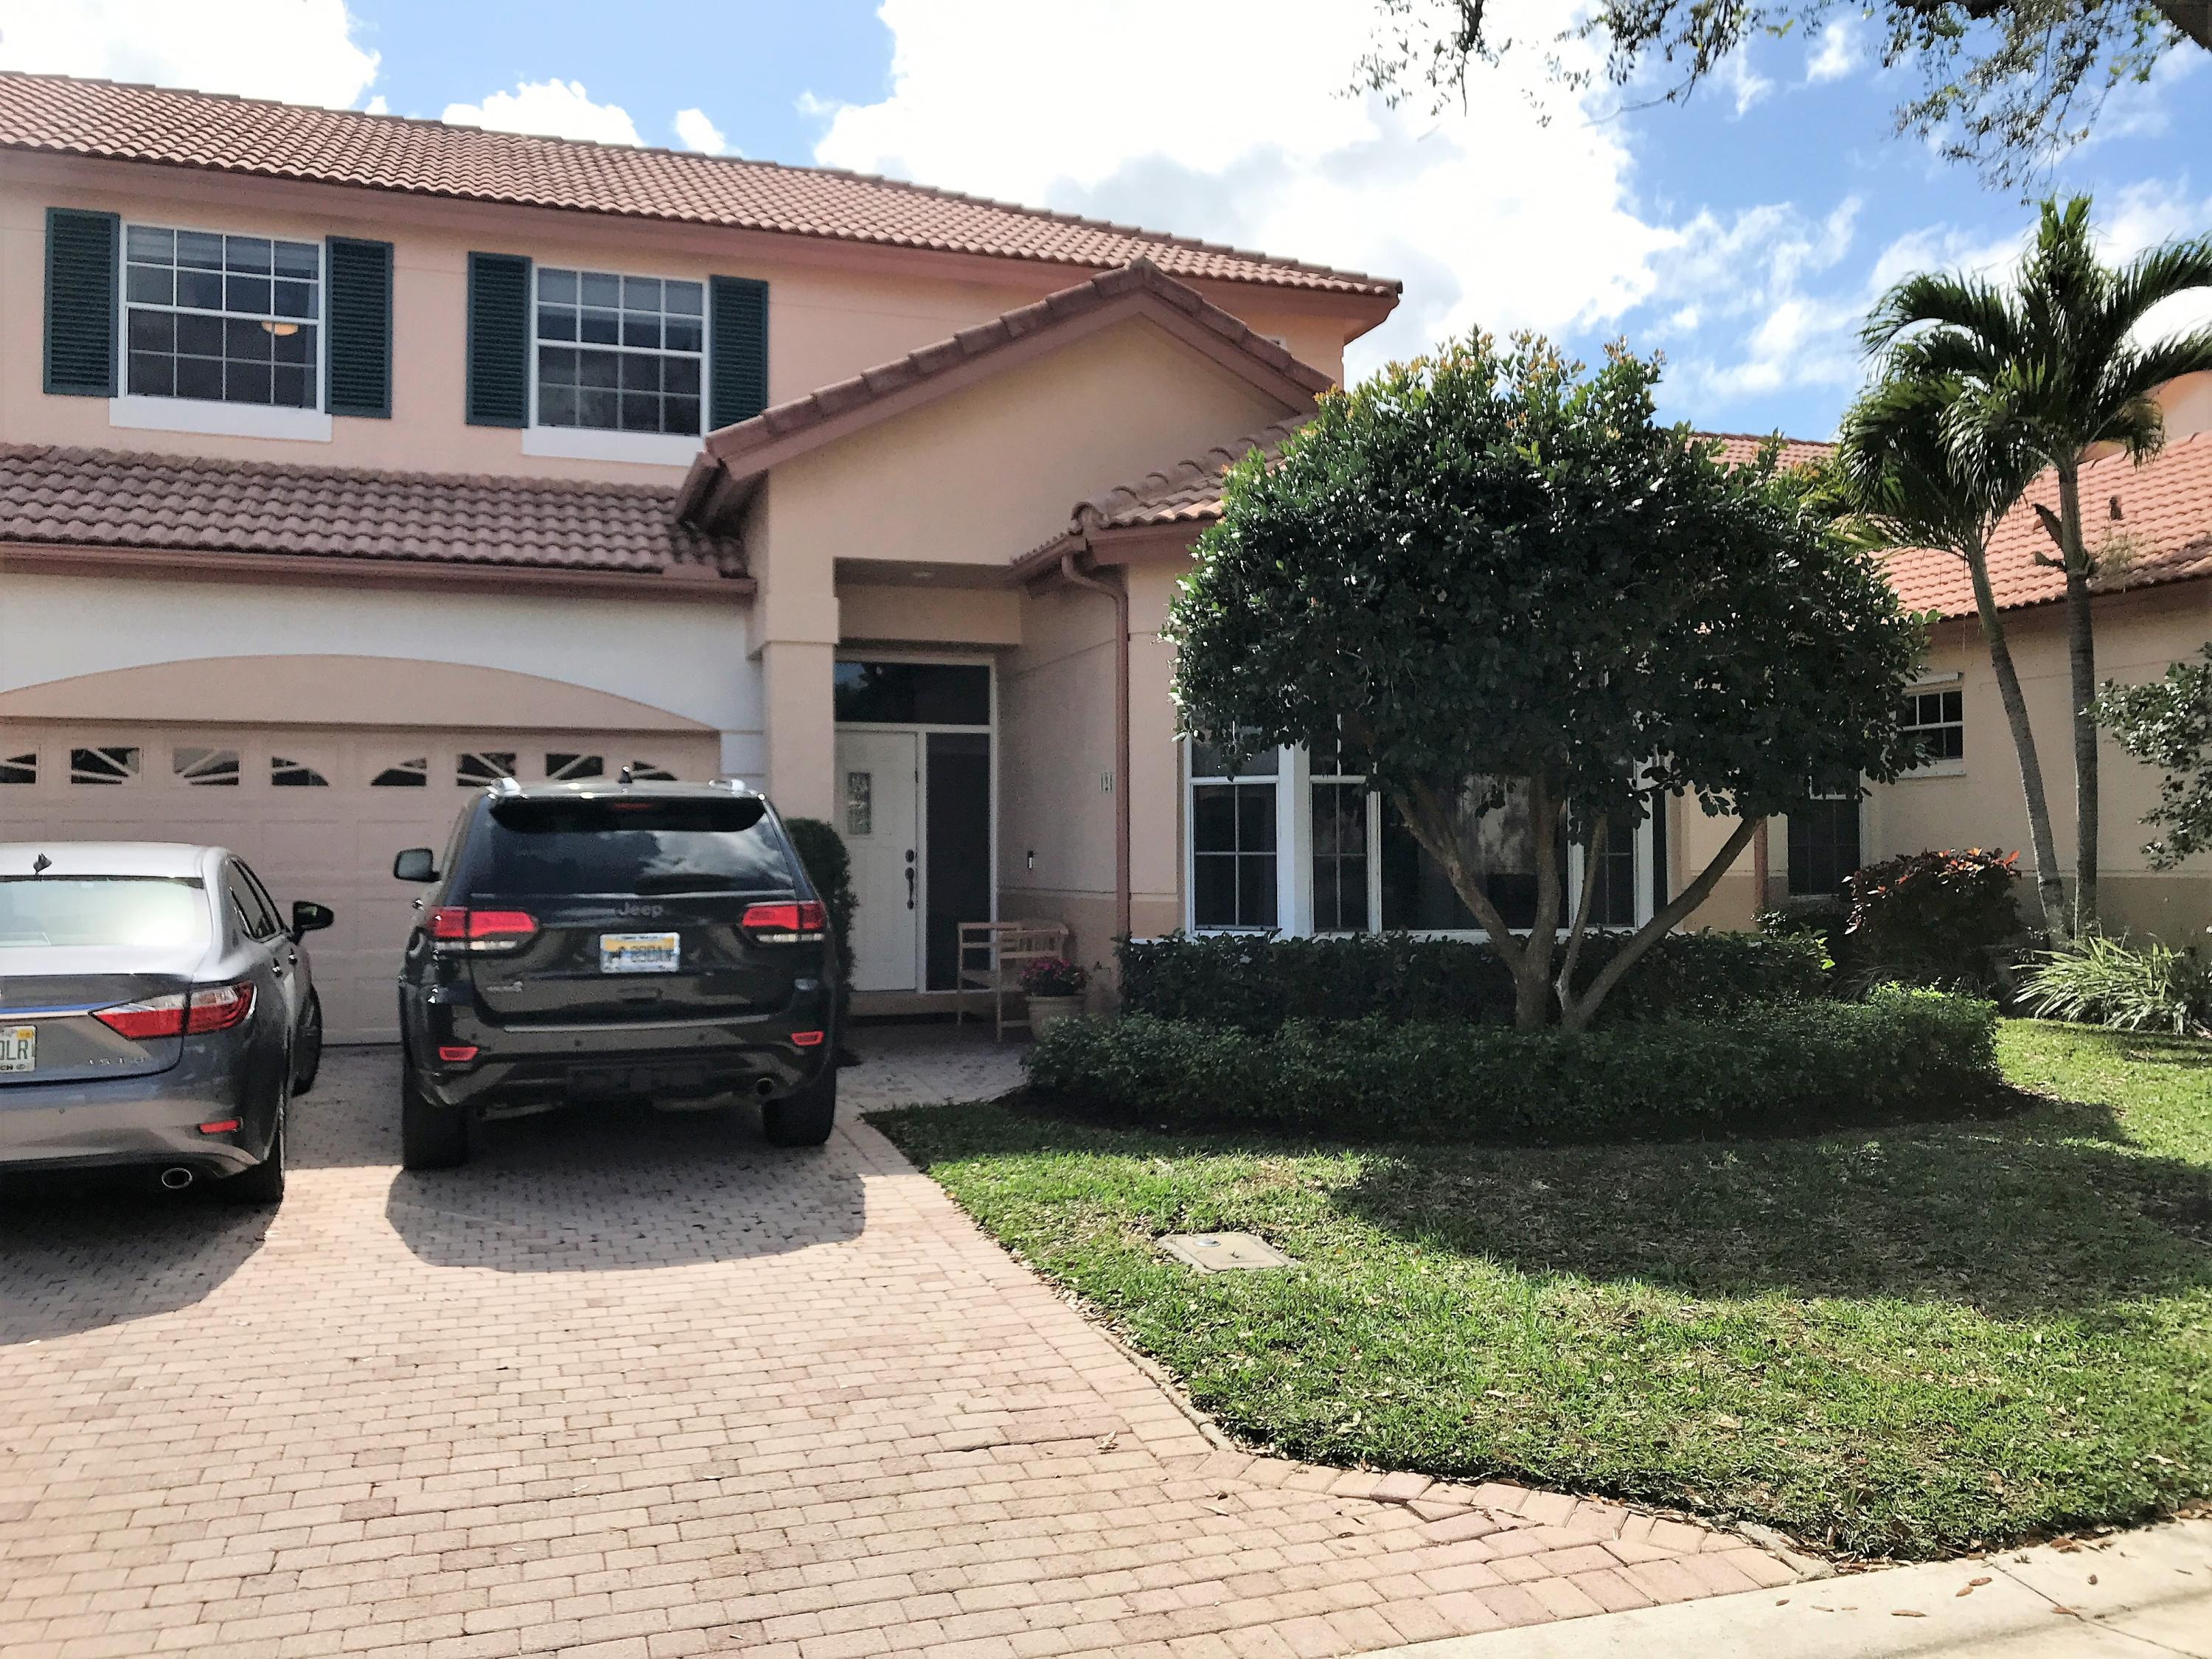 124 Spyglass Way, Palm Beach Gardens, Florida 33418, 4 Bedrooms Bedrooms, ,3.1 BathroomsBathrooms,A,Townhouse,Spyglass,RX-10505381